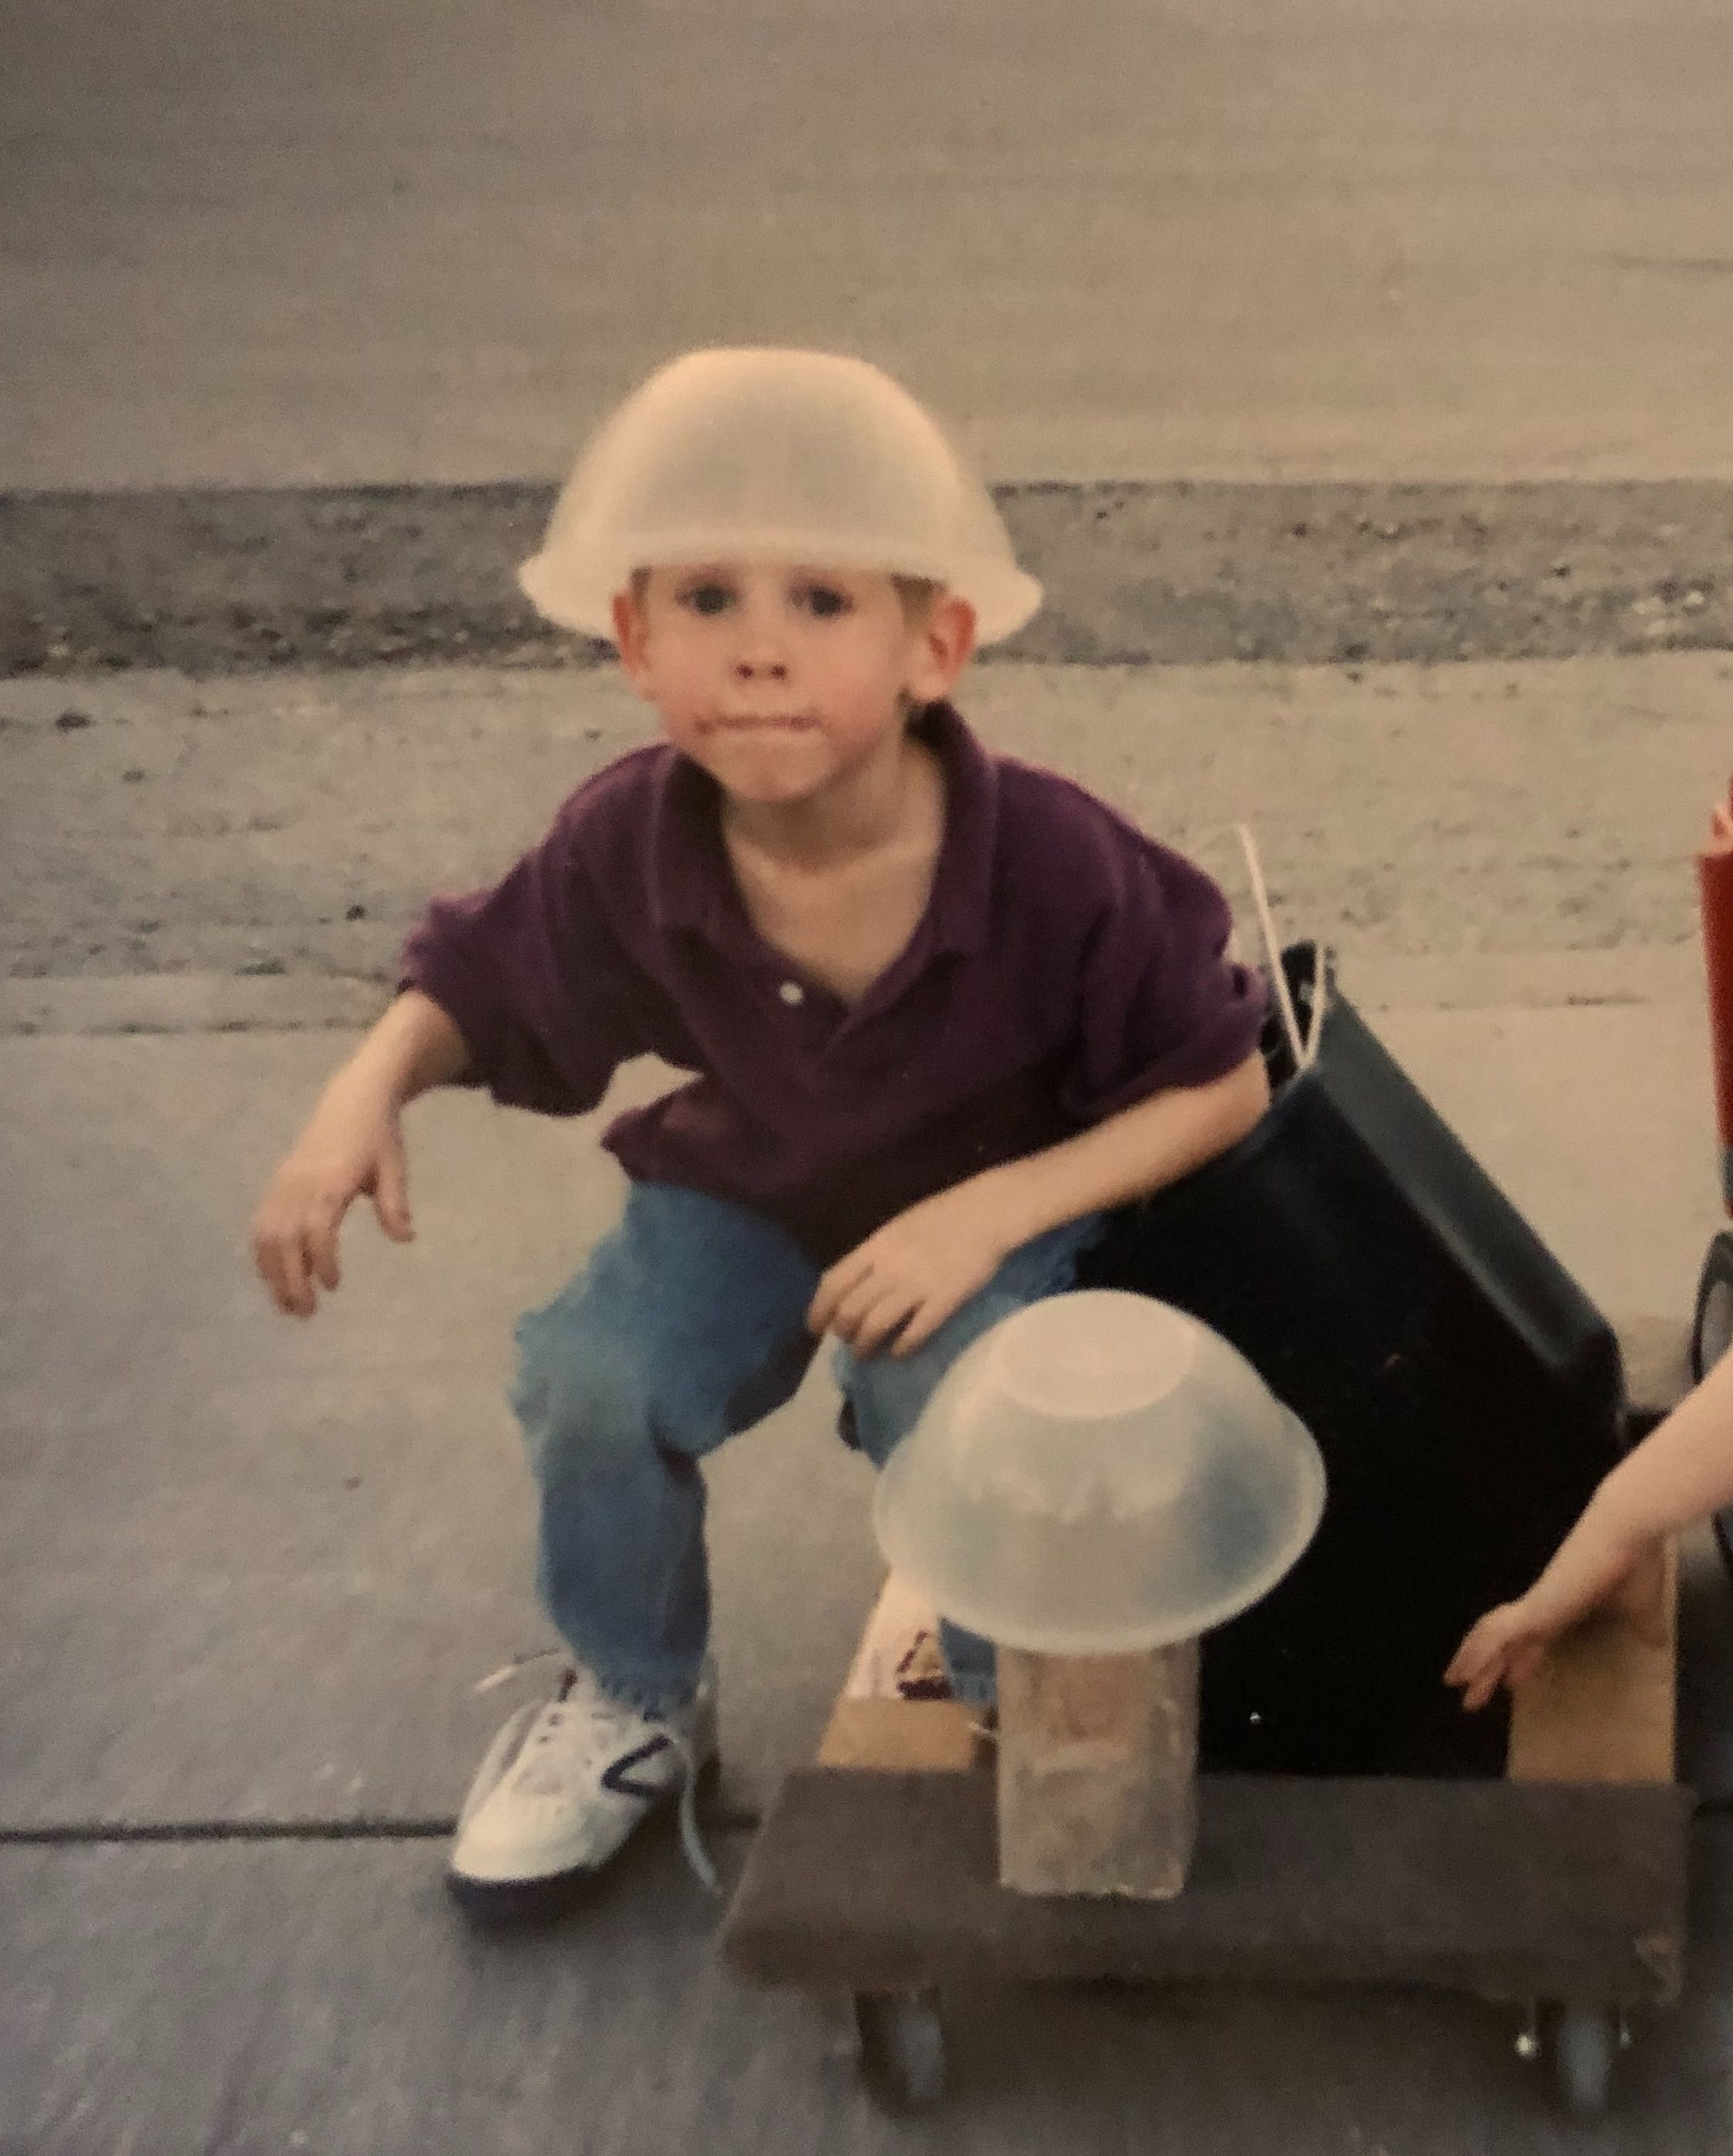 Phill Pasqual as a kid, posing with a bucket on his head